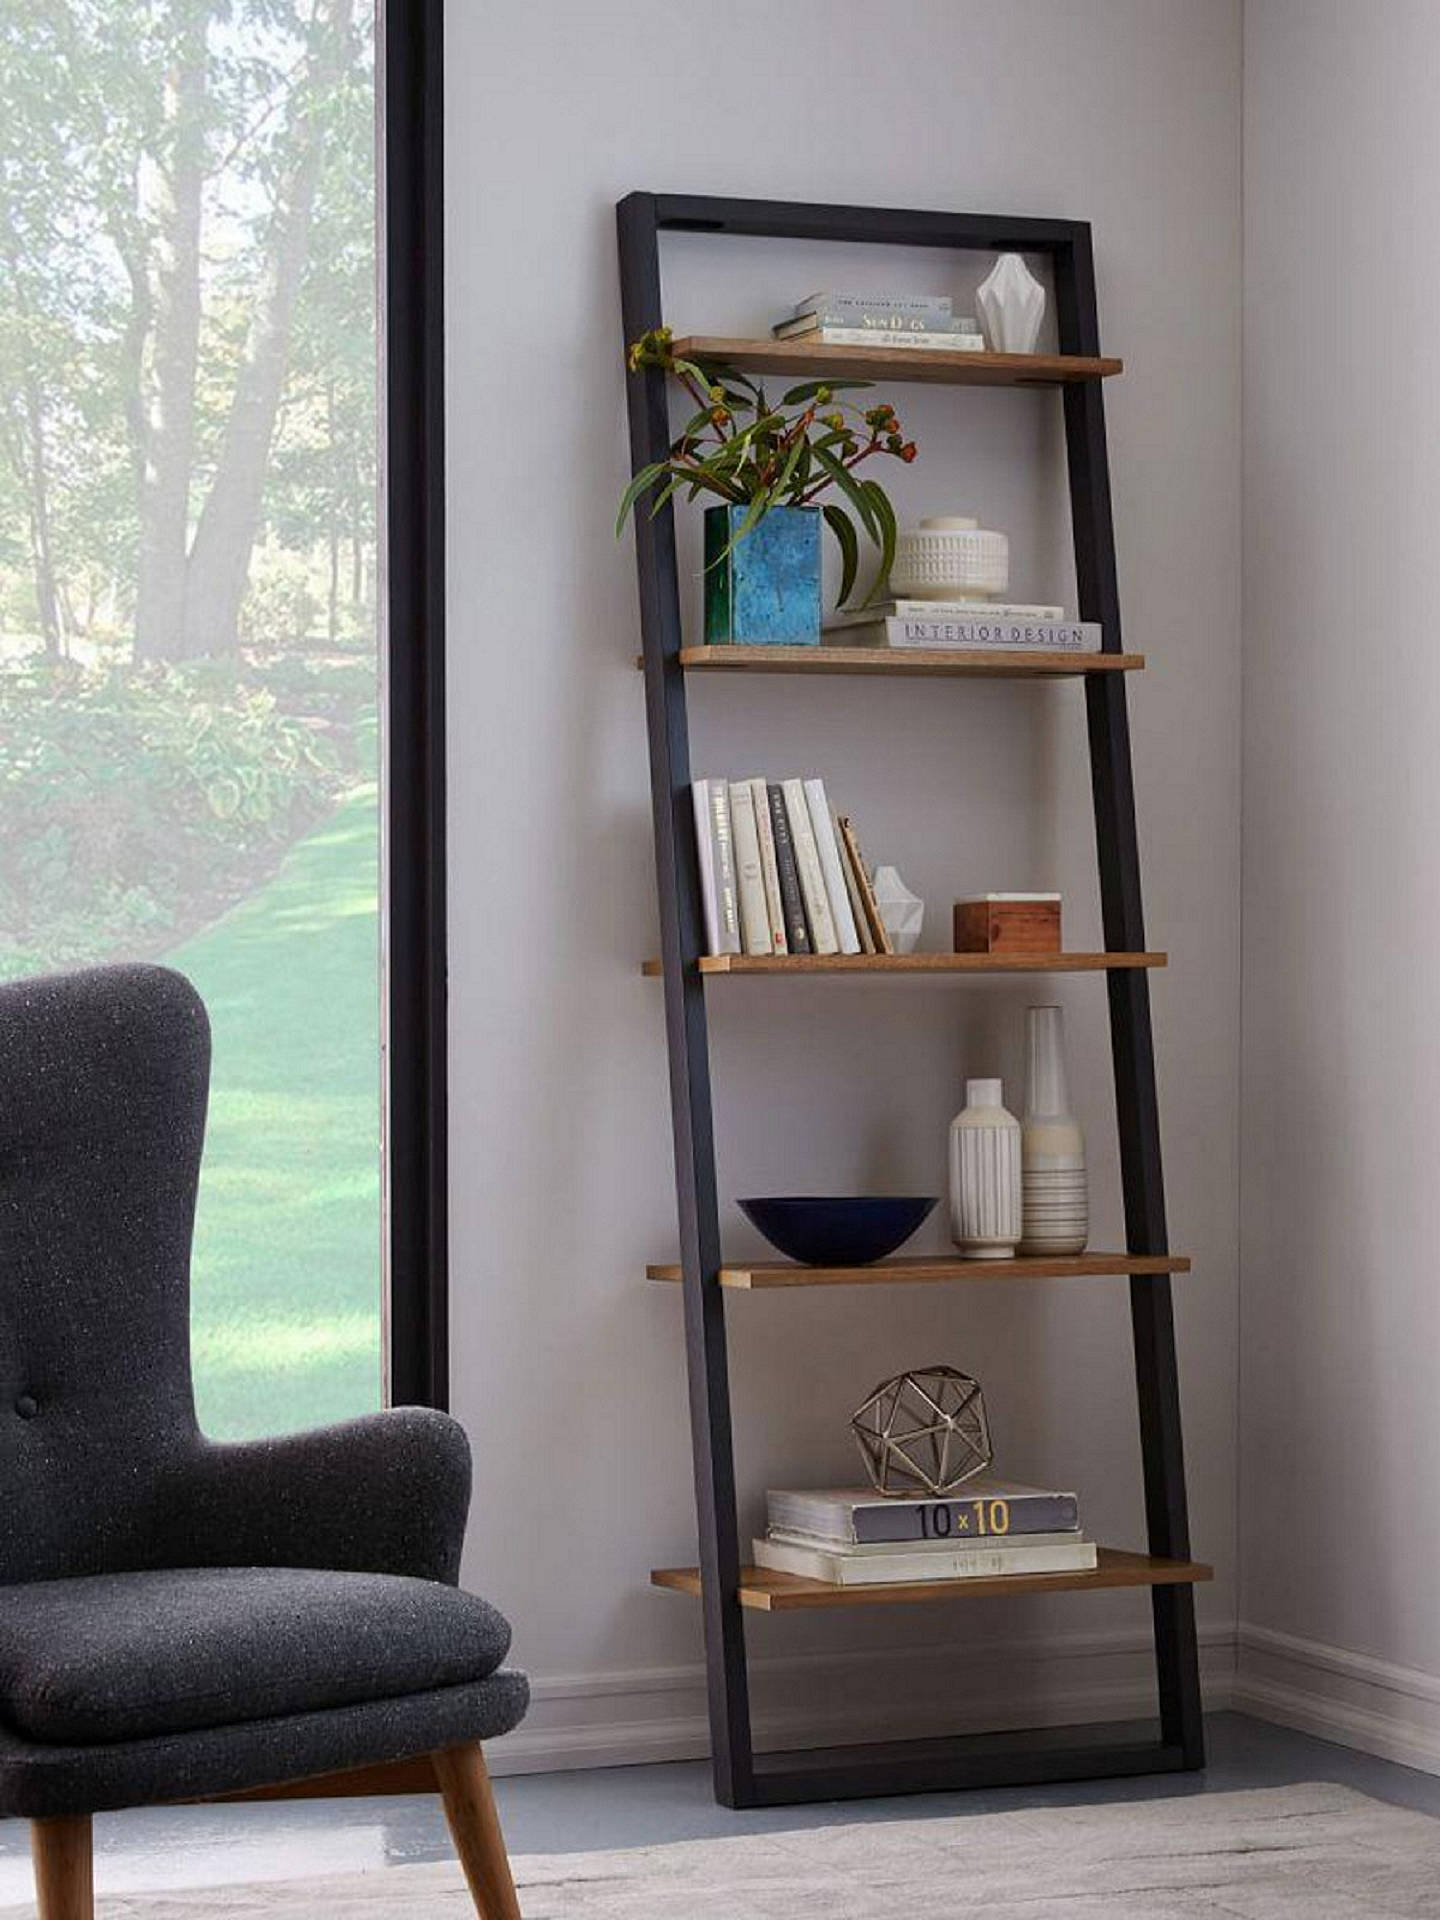 Looking To Purchase This Unit: West Elm Wide Ladder Shelving Unit, Sandstone/Shale At